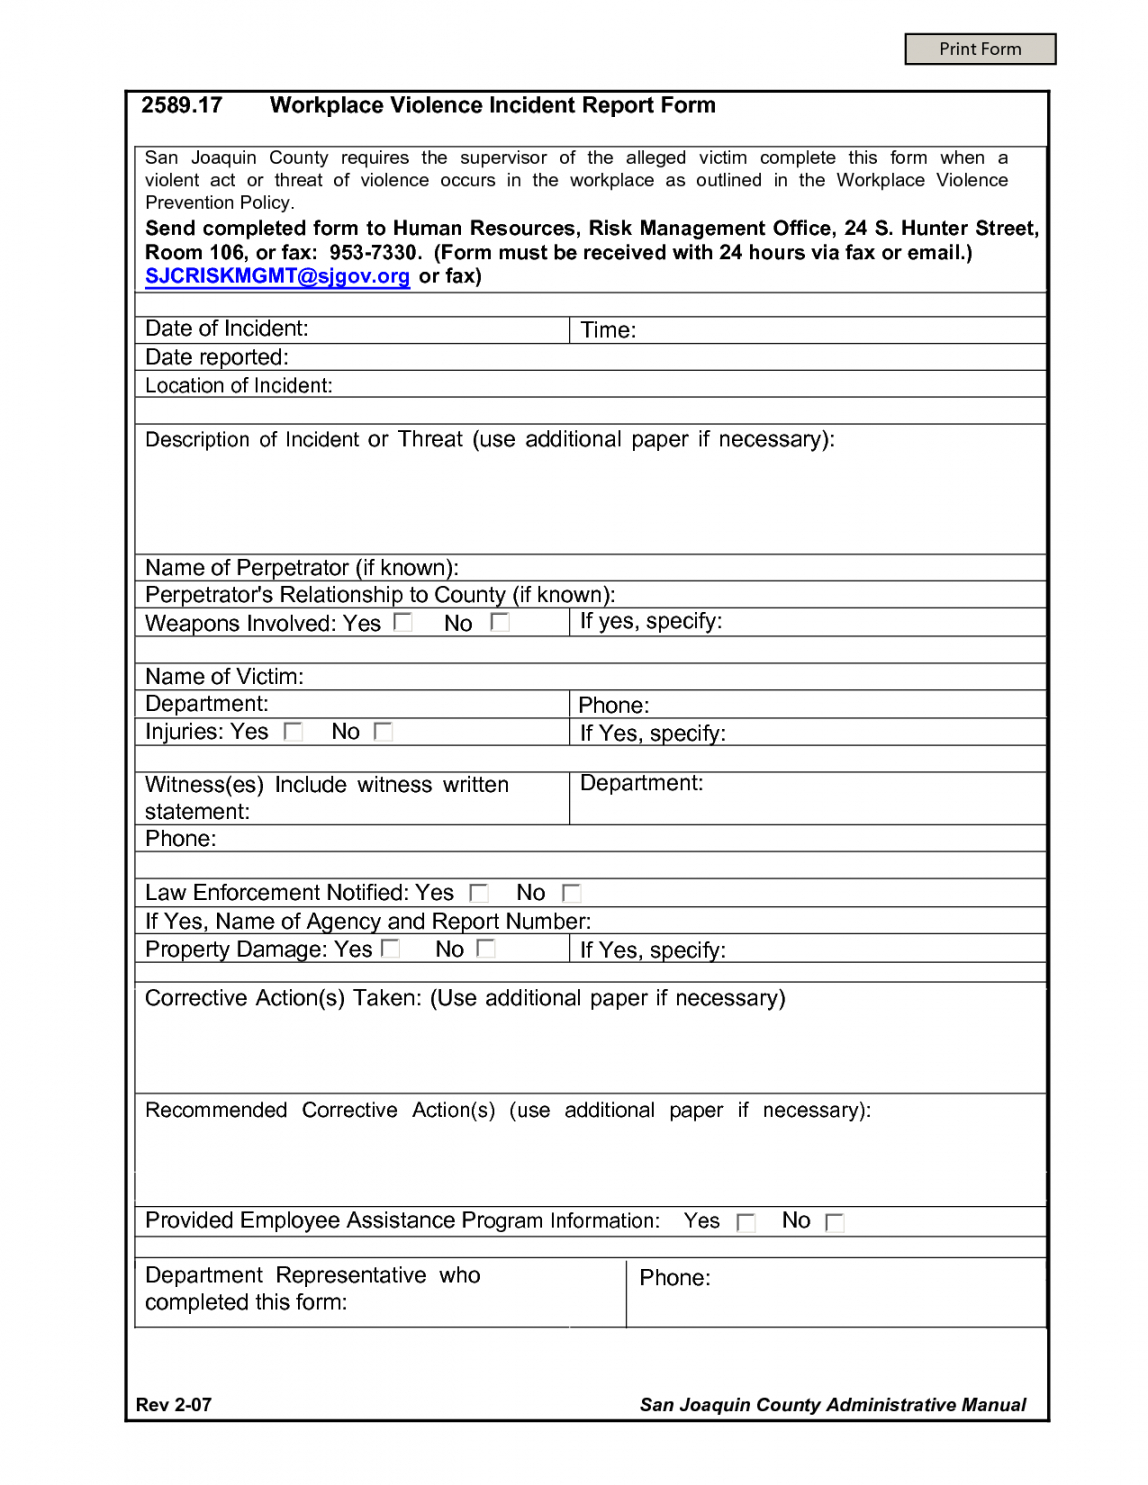 Free 016 Workplace Incident Report Form Template 190187 Accident Forms Accident Incident Report Form Template Sample